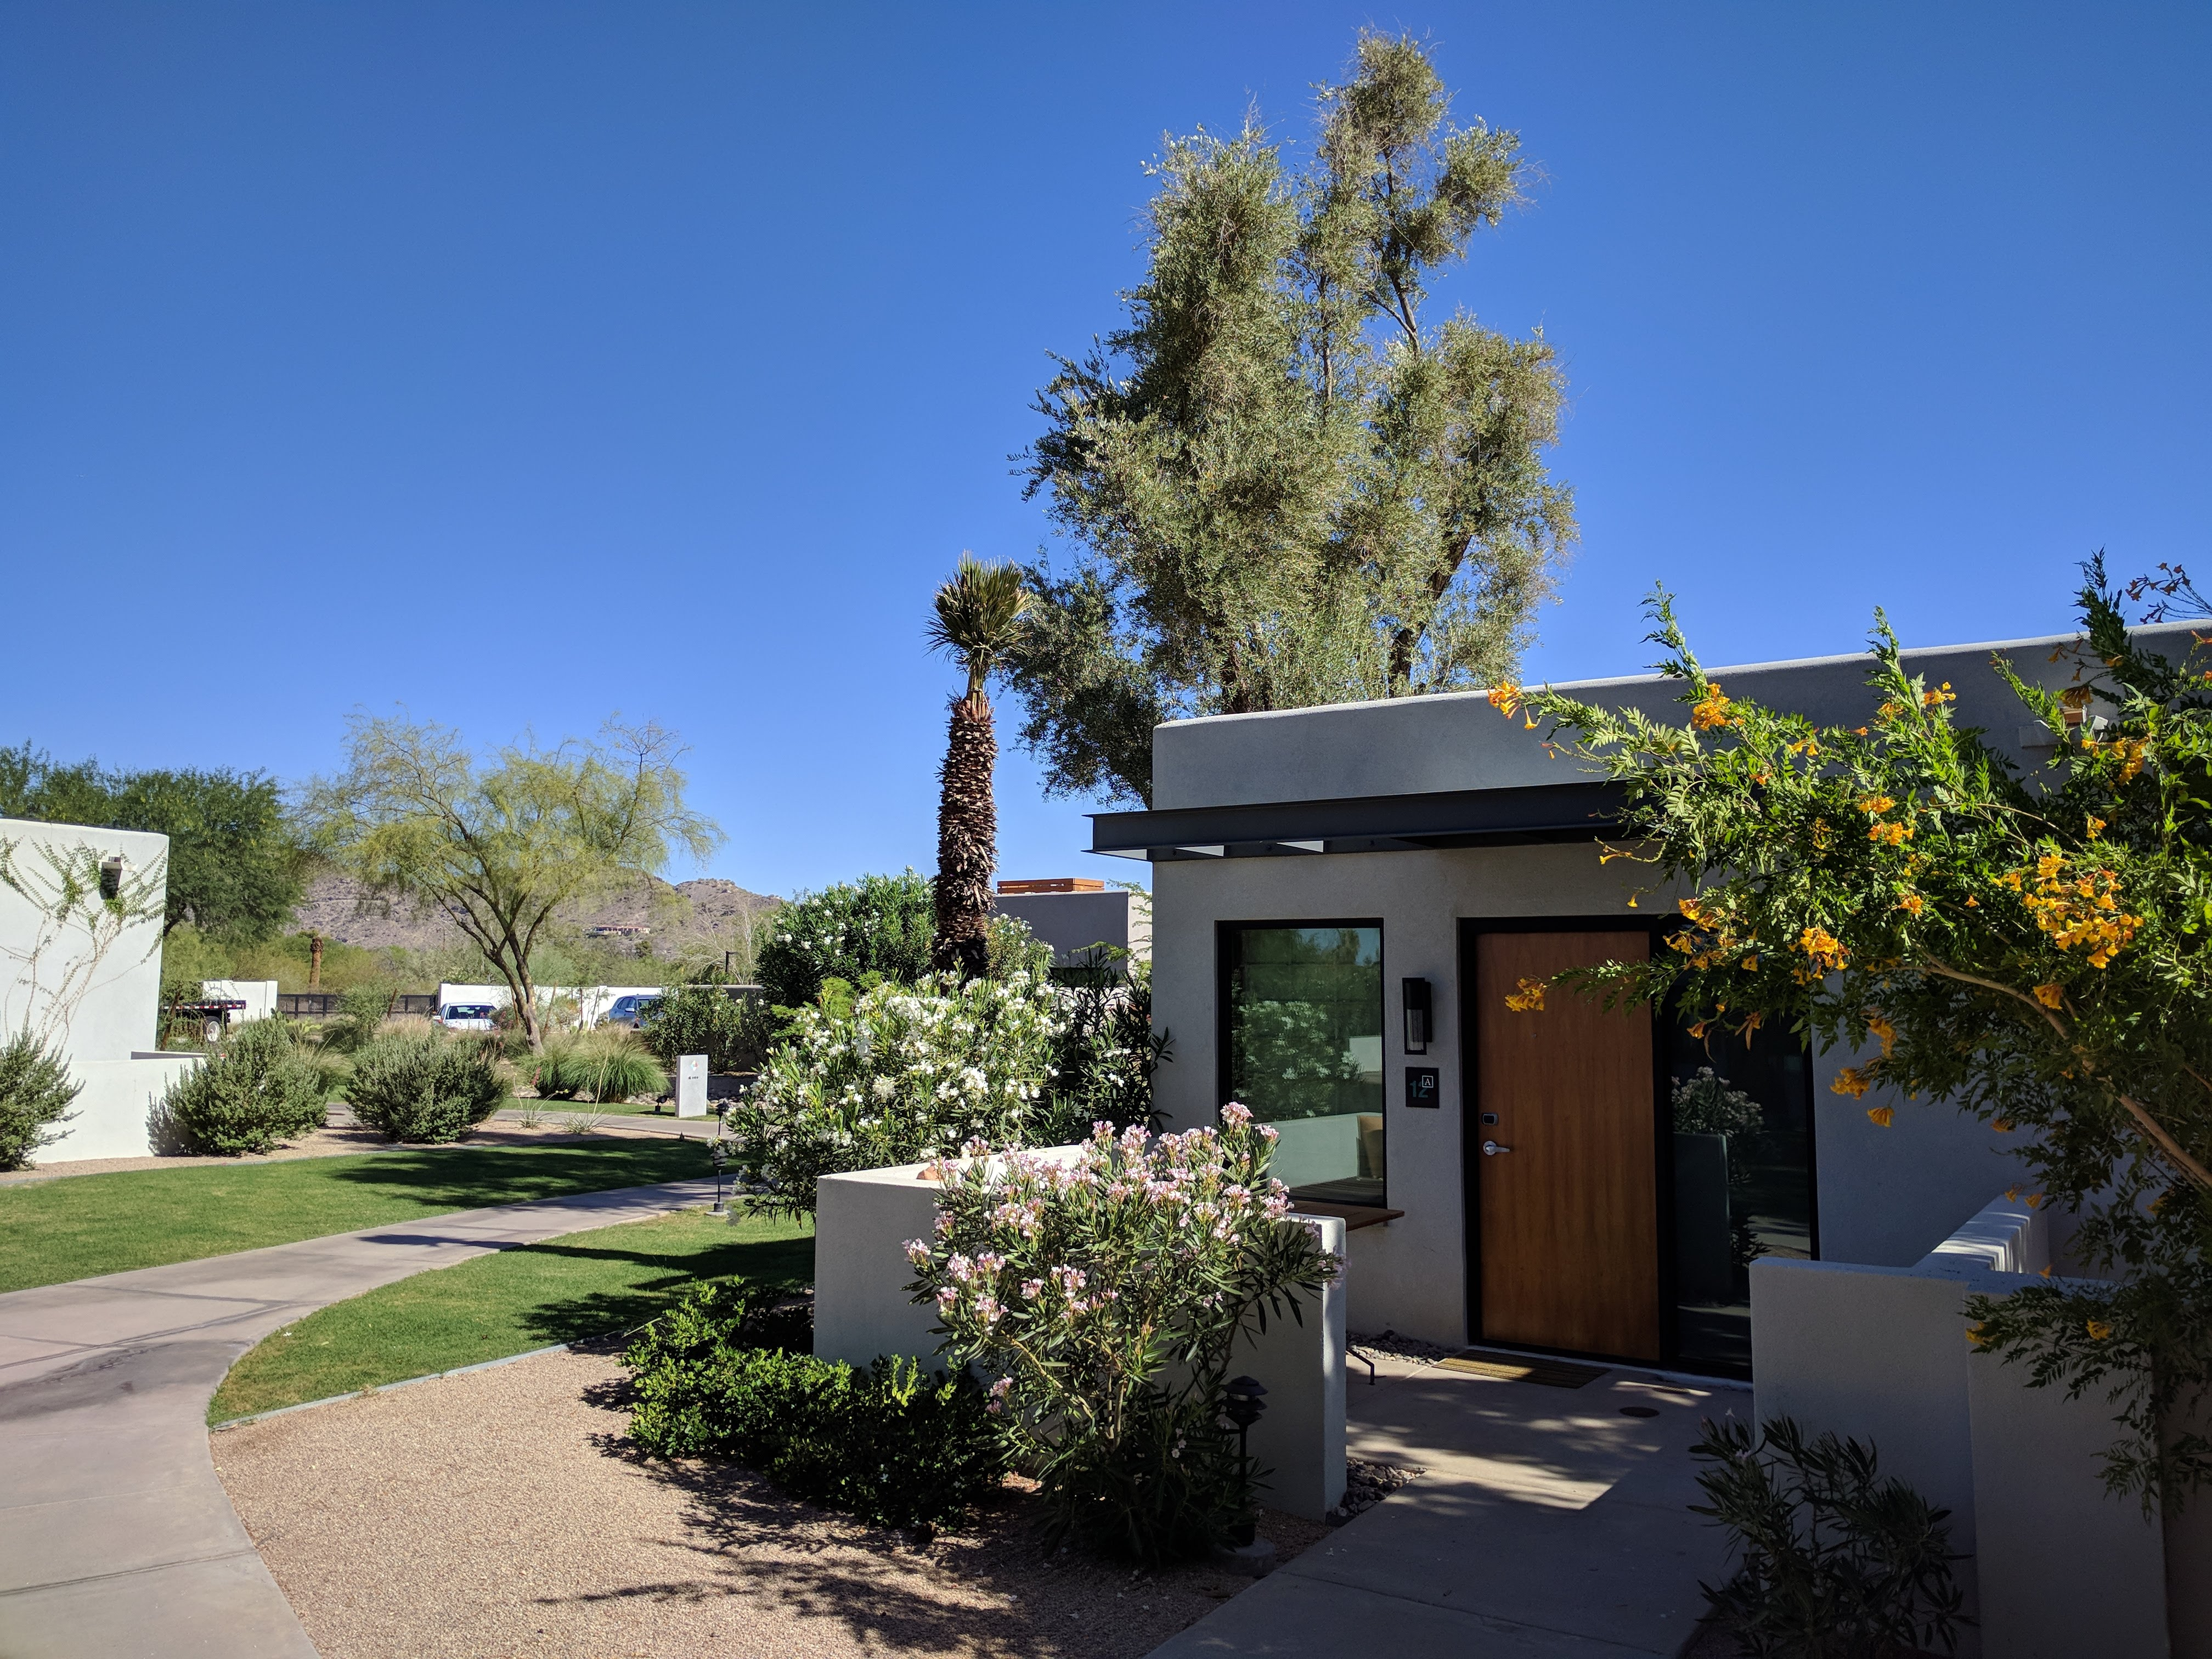 Casita/bungalow at the Andaz Scottsdale